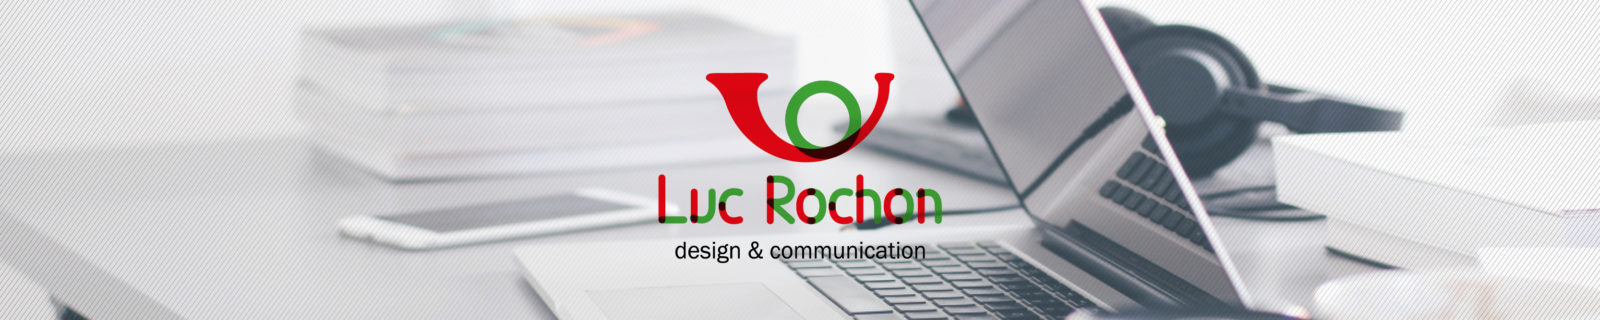 Luc Rochon